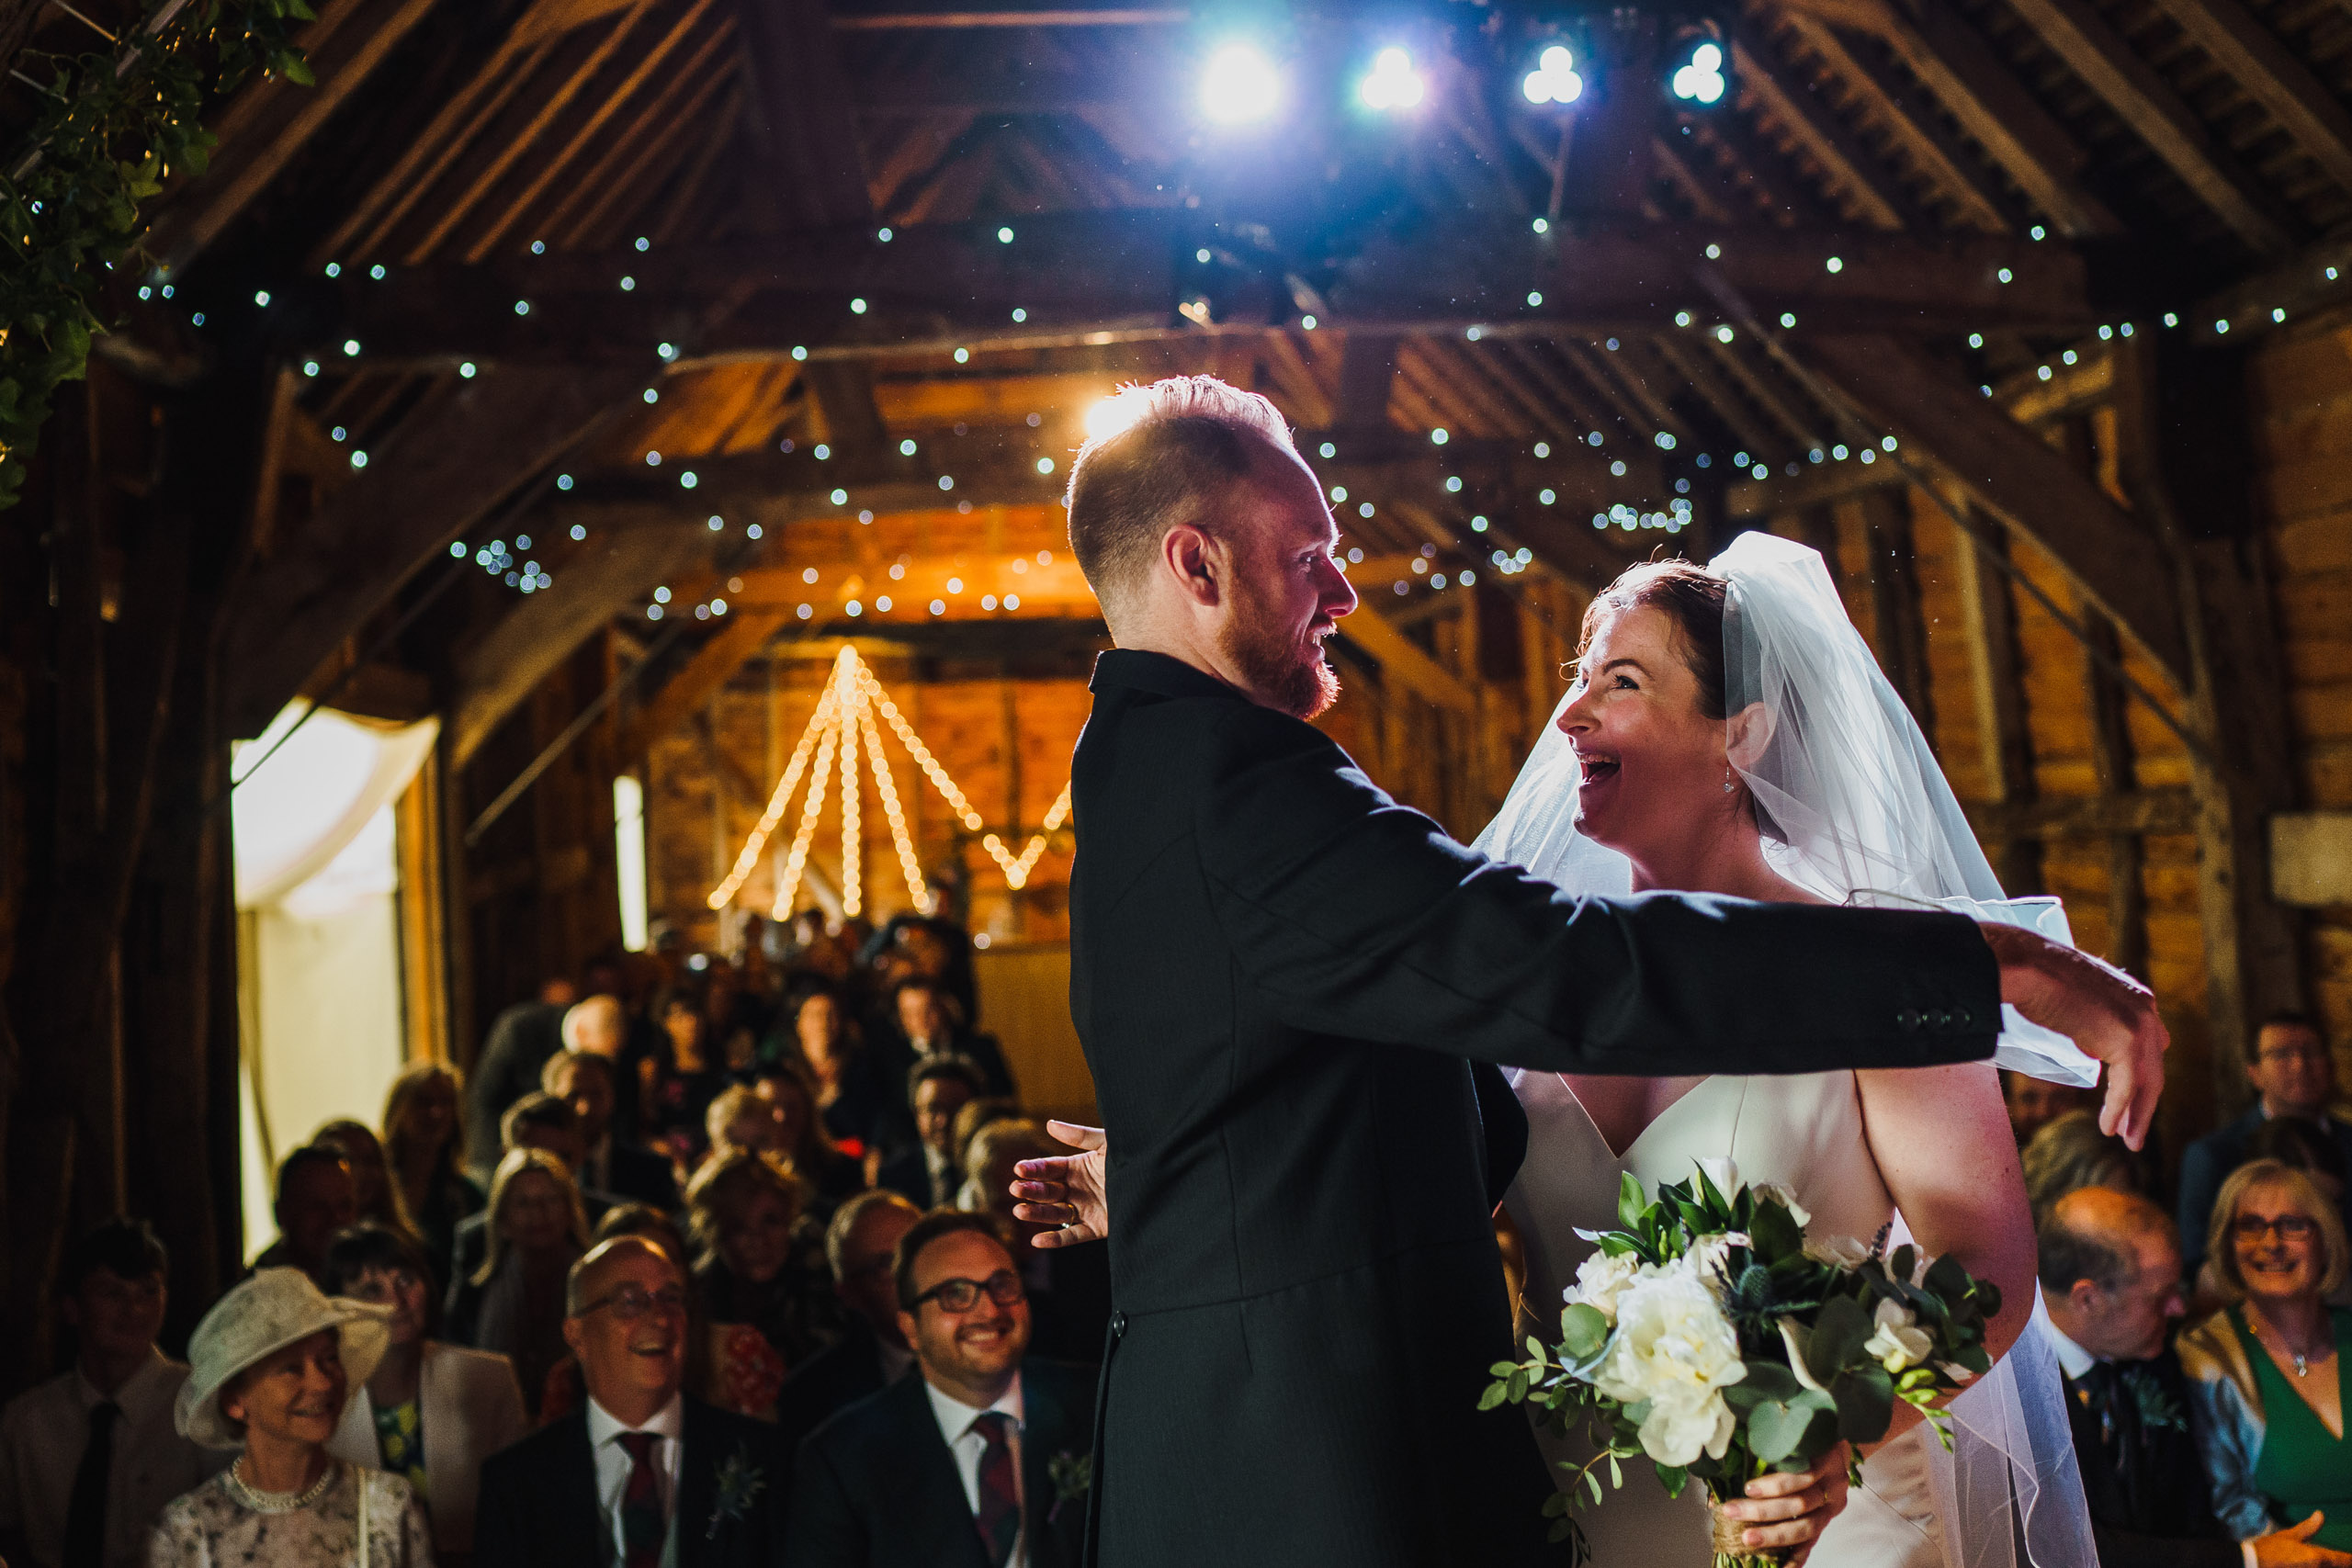 A groom removes the brides veil as they marry at a Norfolk barn wedding.